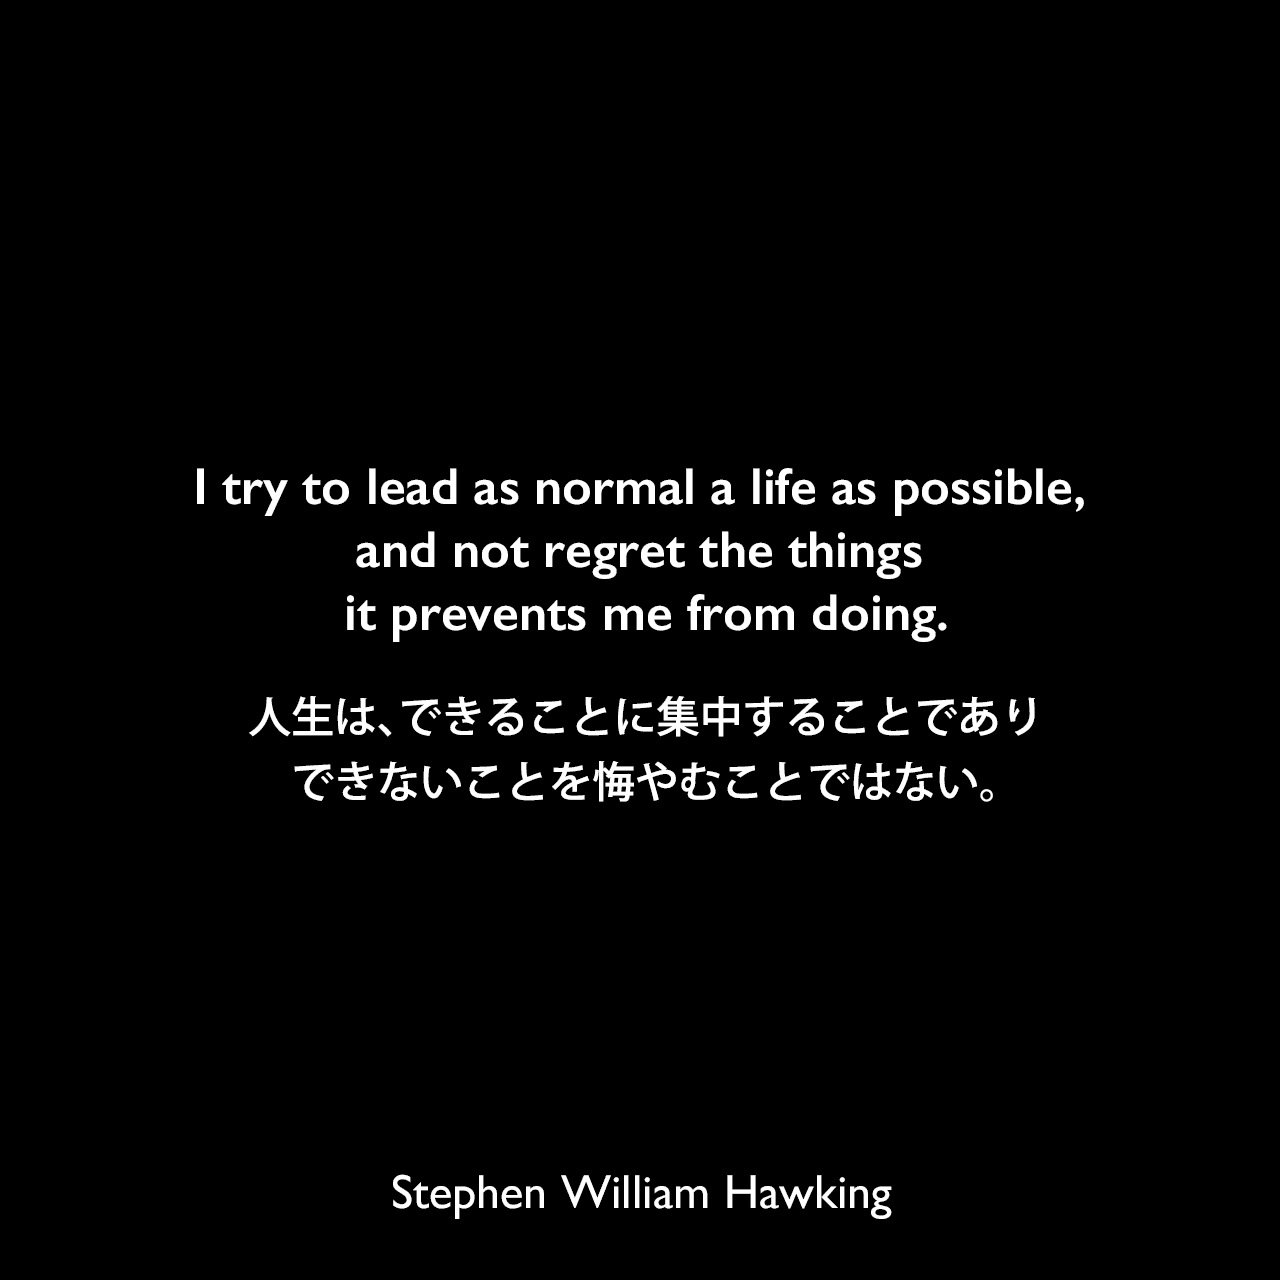 I try to lead as normal a life as possible, and not regret the things it prevents me from doing.人生は、できることに集中することであり、できないことを悔やむことではない。